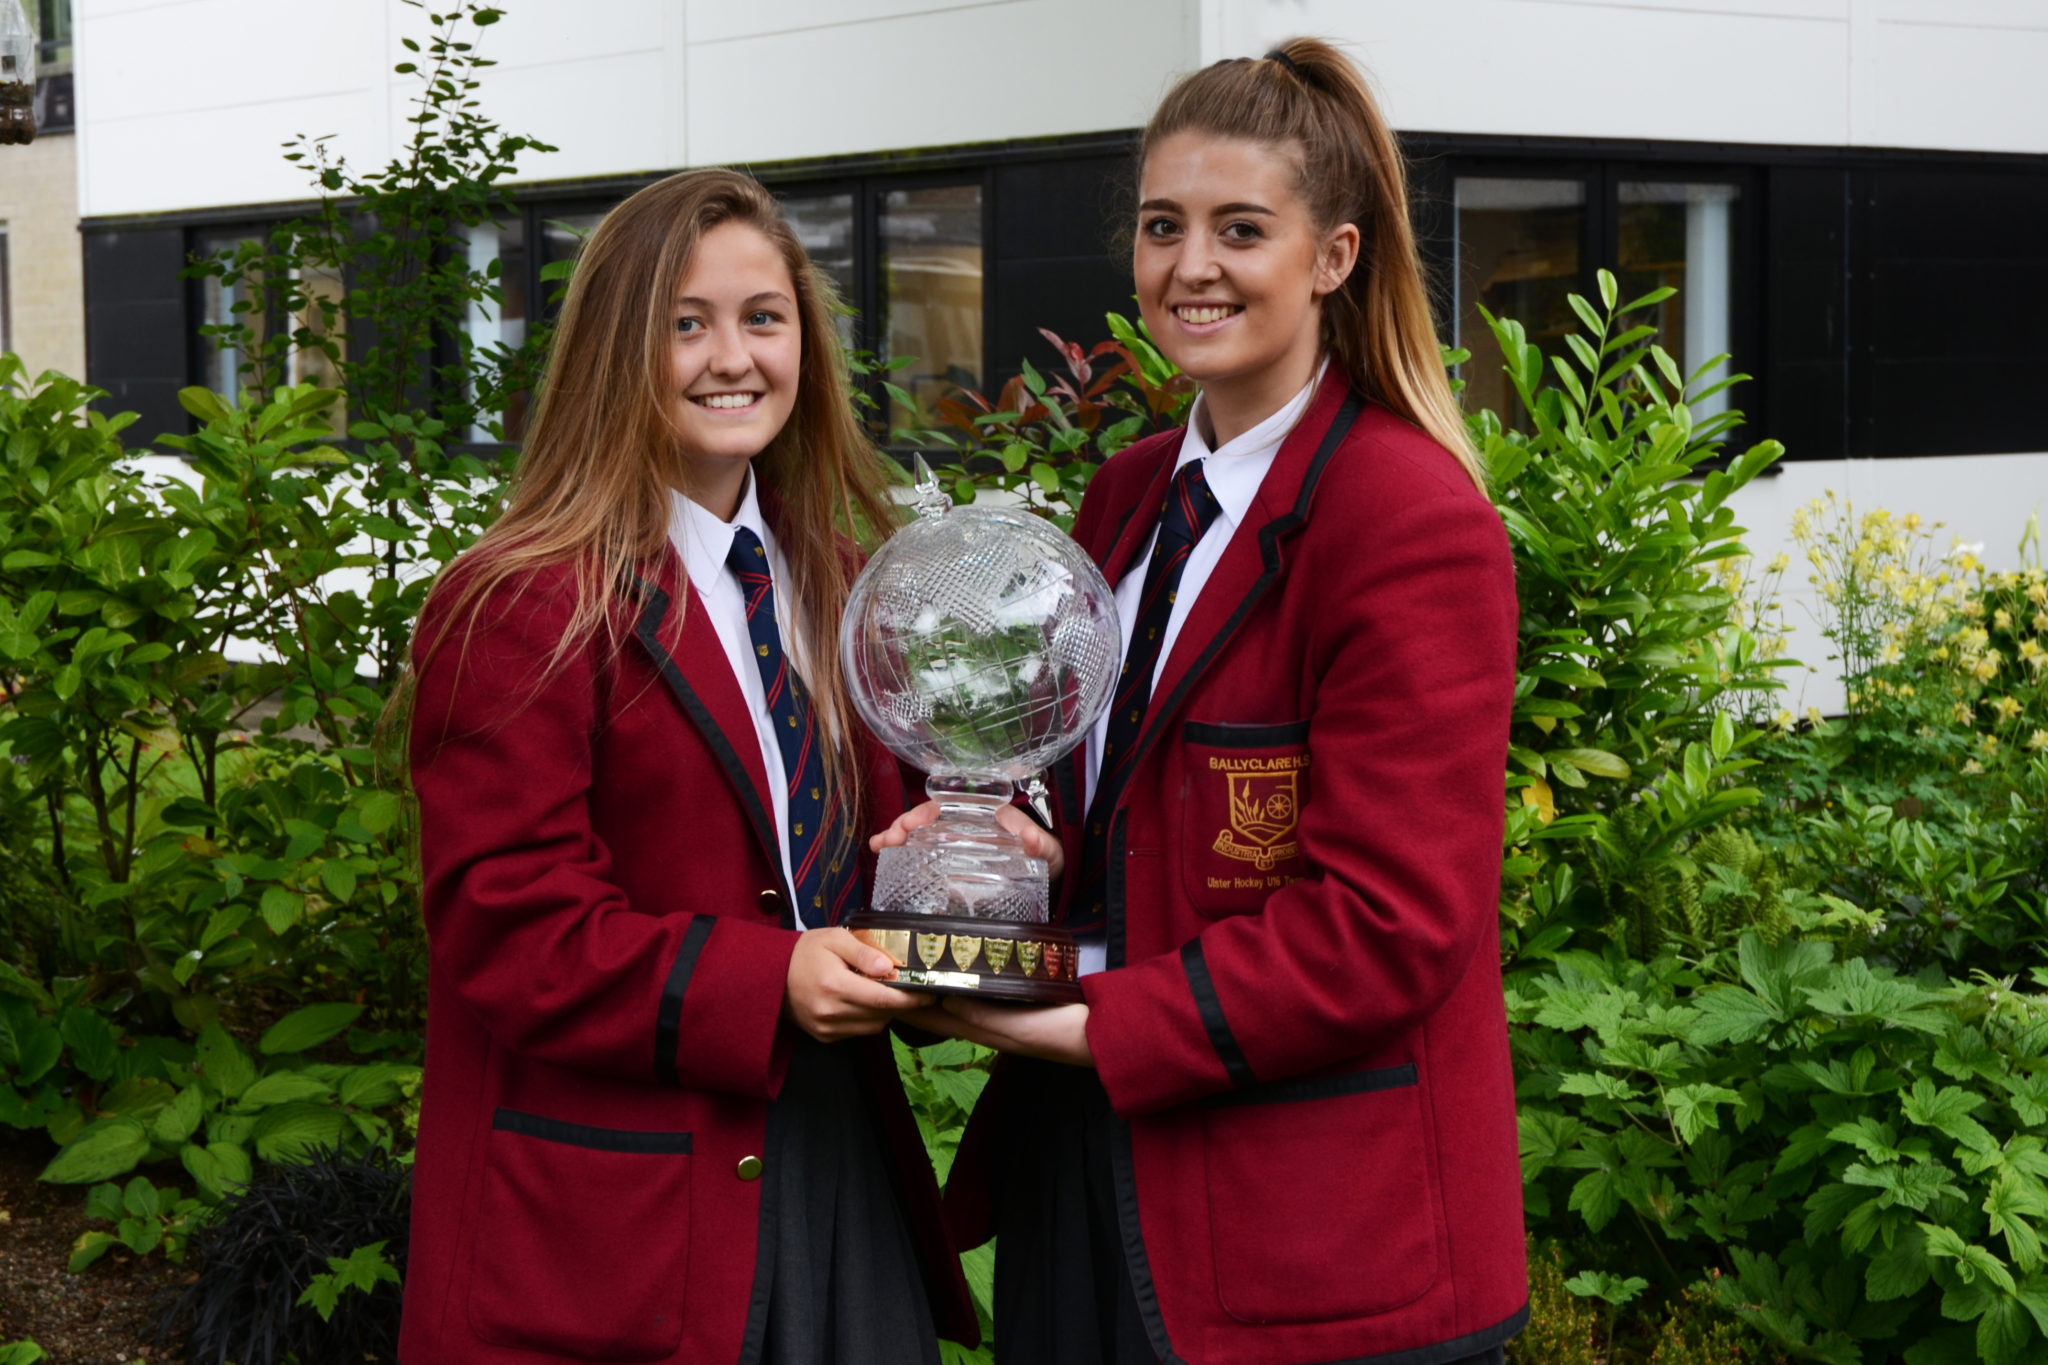 The Lowe Globe for International Representation goes to Sophie McDowell and Rebecca McConnell for Irish U18 Hockey